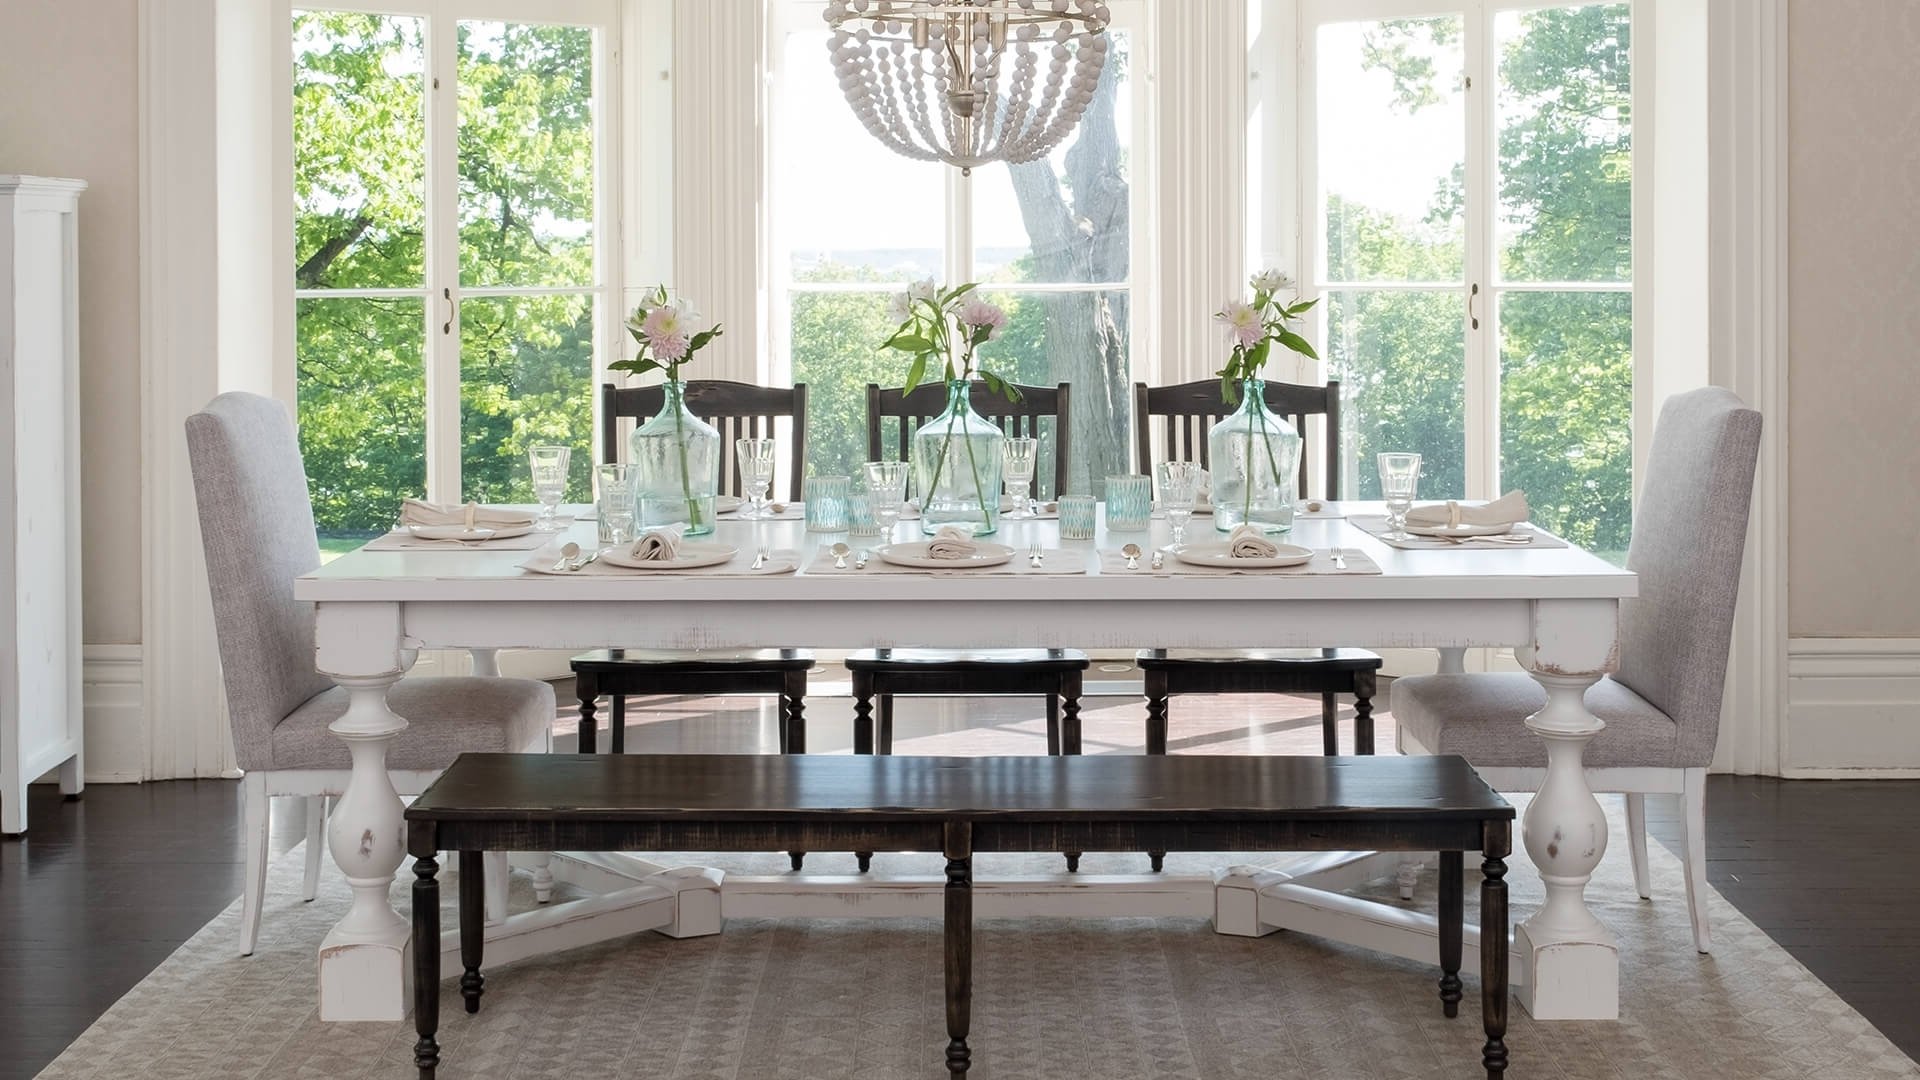 Preferred Dining Room Tables Regarding Wood Furniture For Kitchen, Living And Dining Room – Canadel (Gallery 23 of 25)